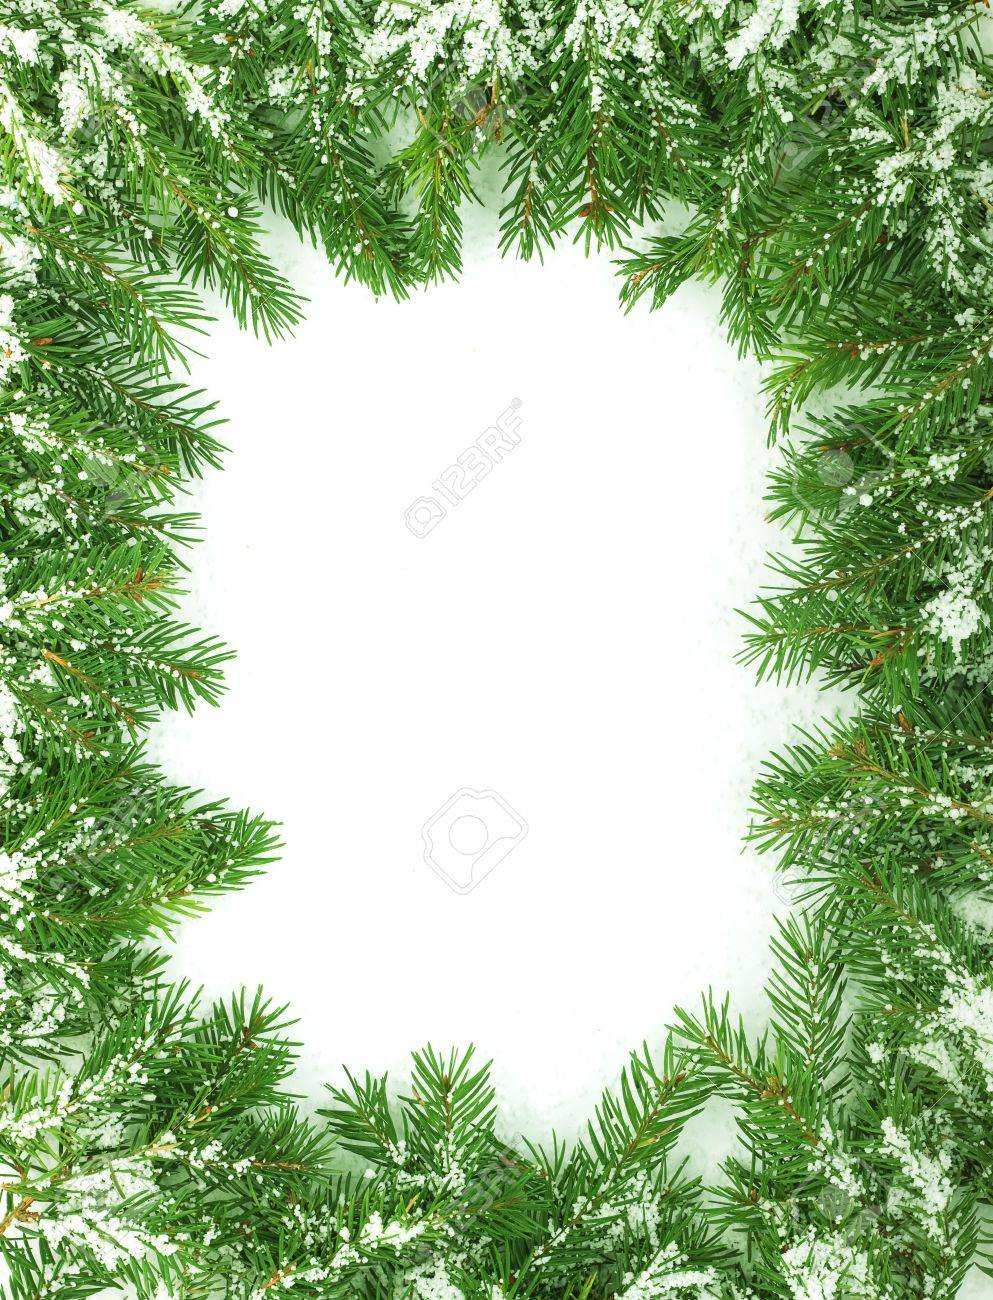 Christmas framework with snow isolated on white background Stock Photo - 5748341